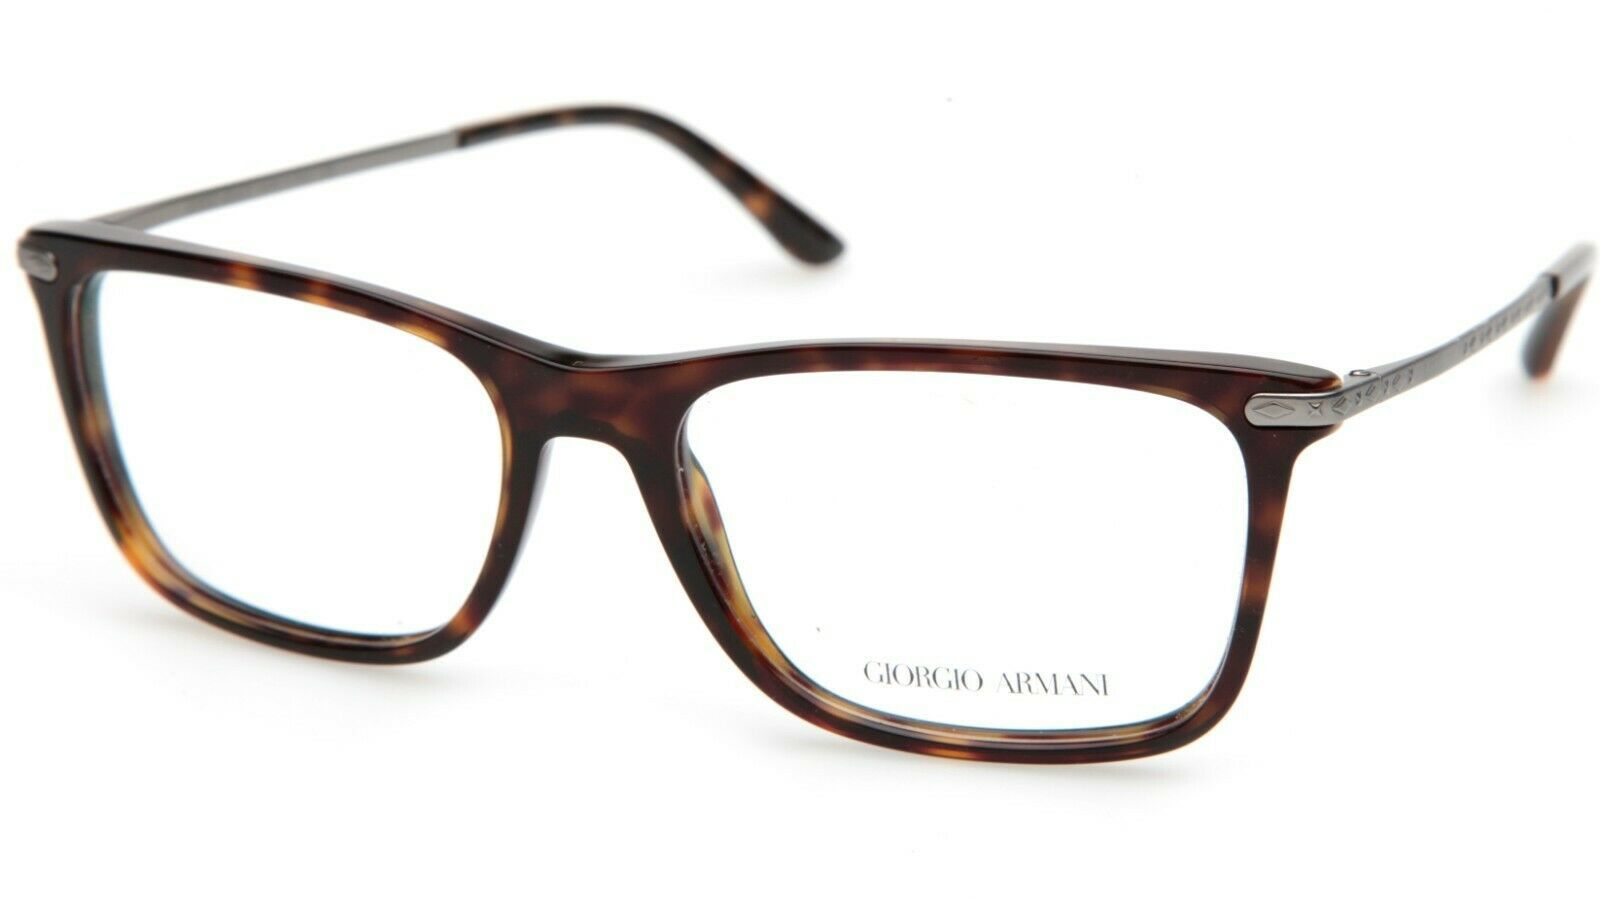 Primary image for New GIORGIO ARMANI AR7111 5026 HAVANA EYEGLASSES FRAME 55-17-145mm B38mm Italy